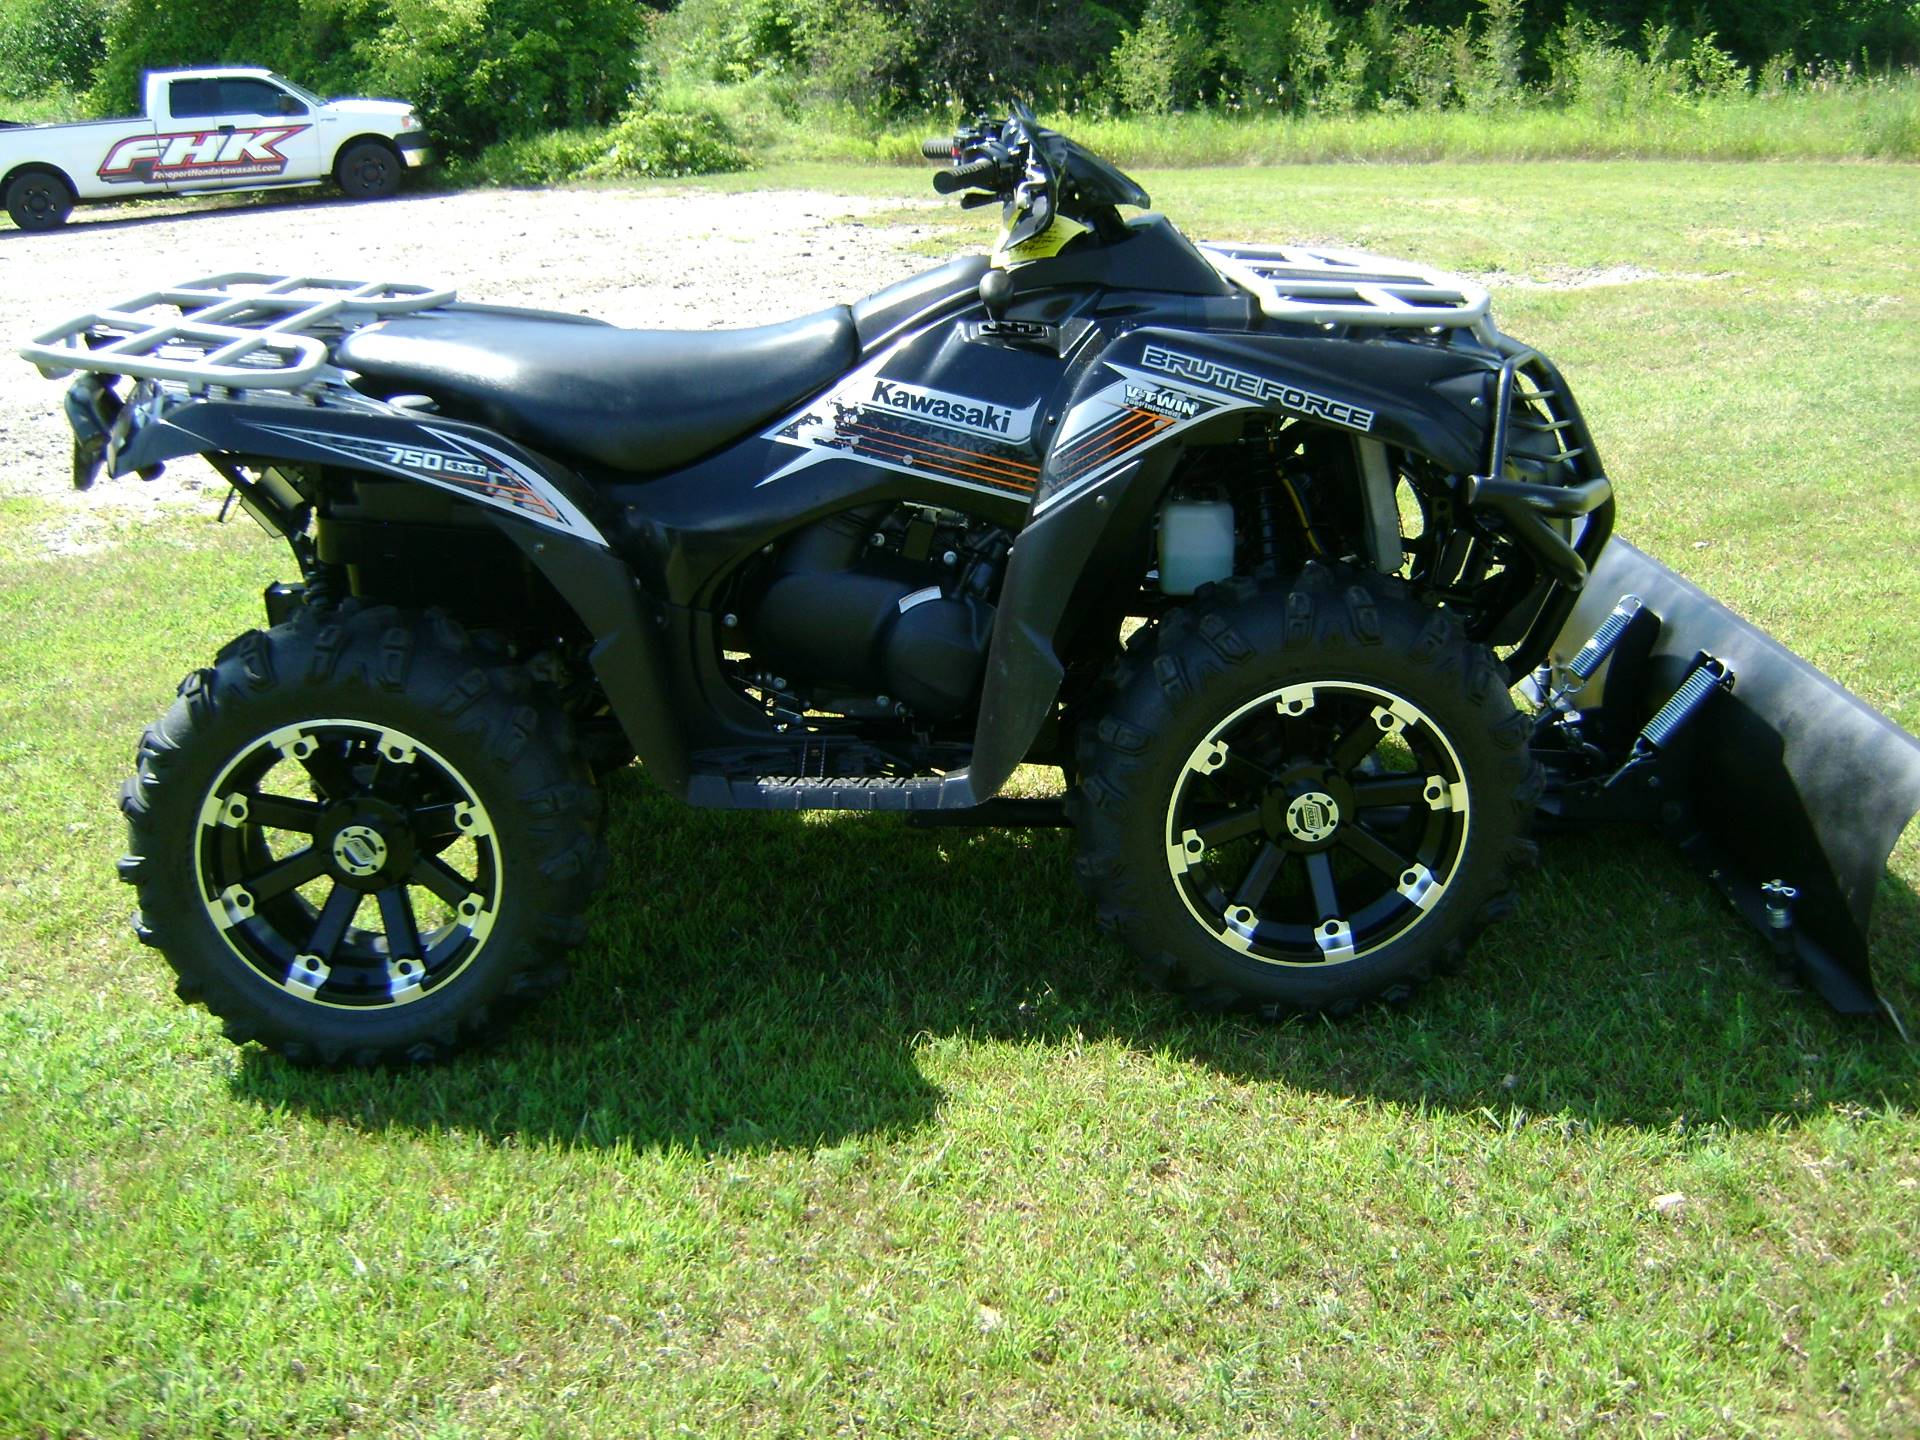 2012 Kawasaki BRUTE FORCE 750 in Freeport, Illinois - Photo 1